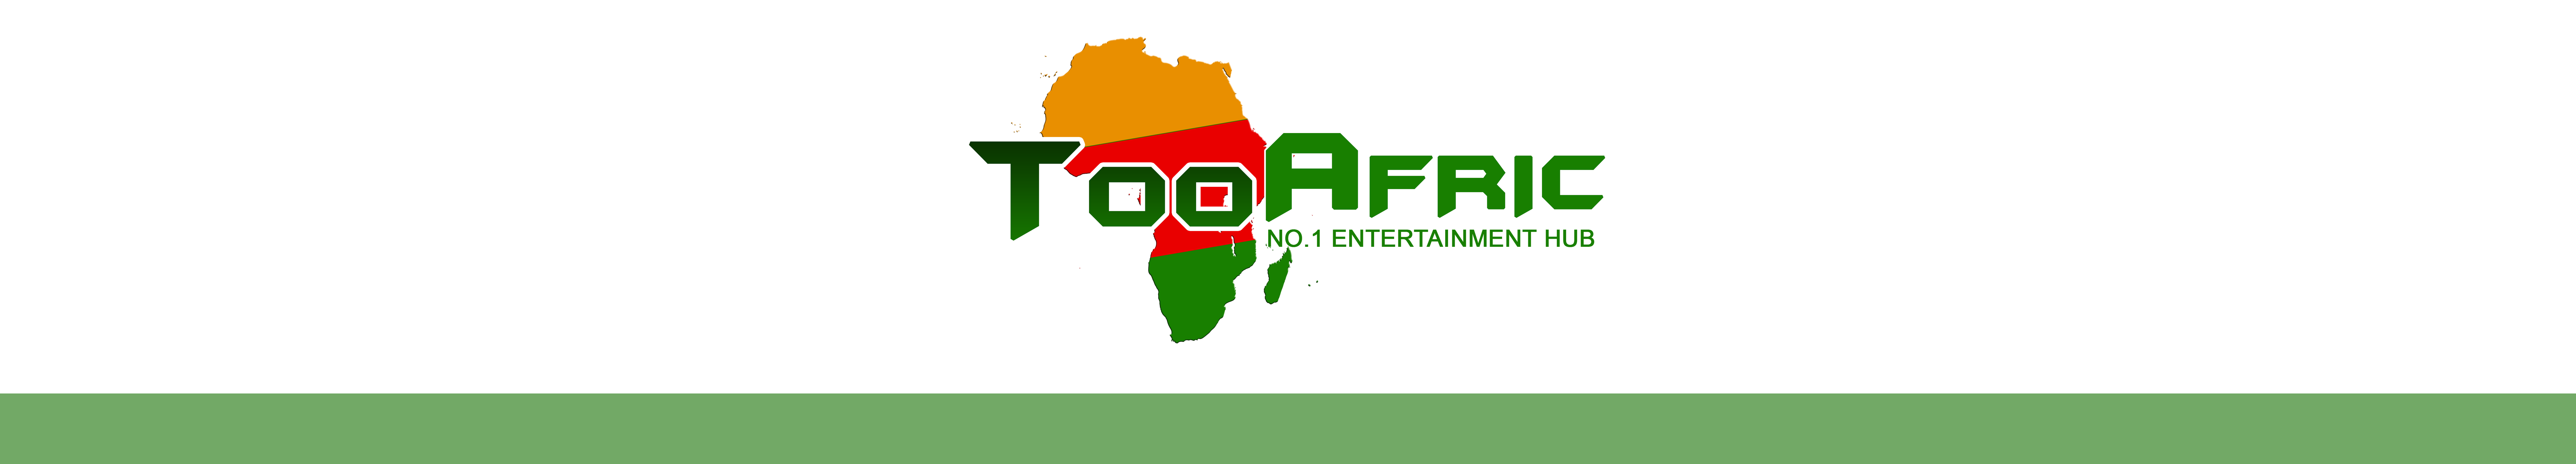 TOOAFRIC logo